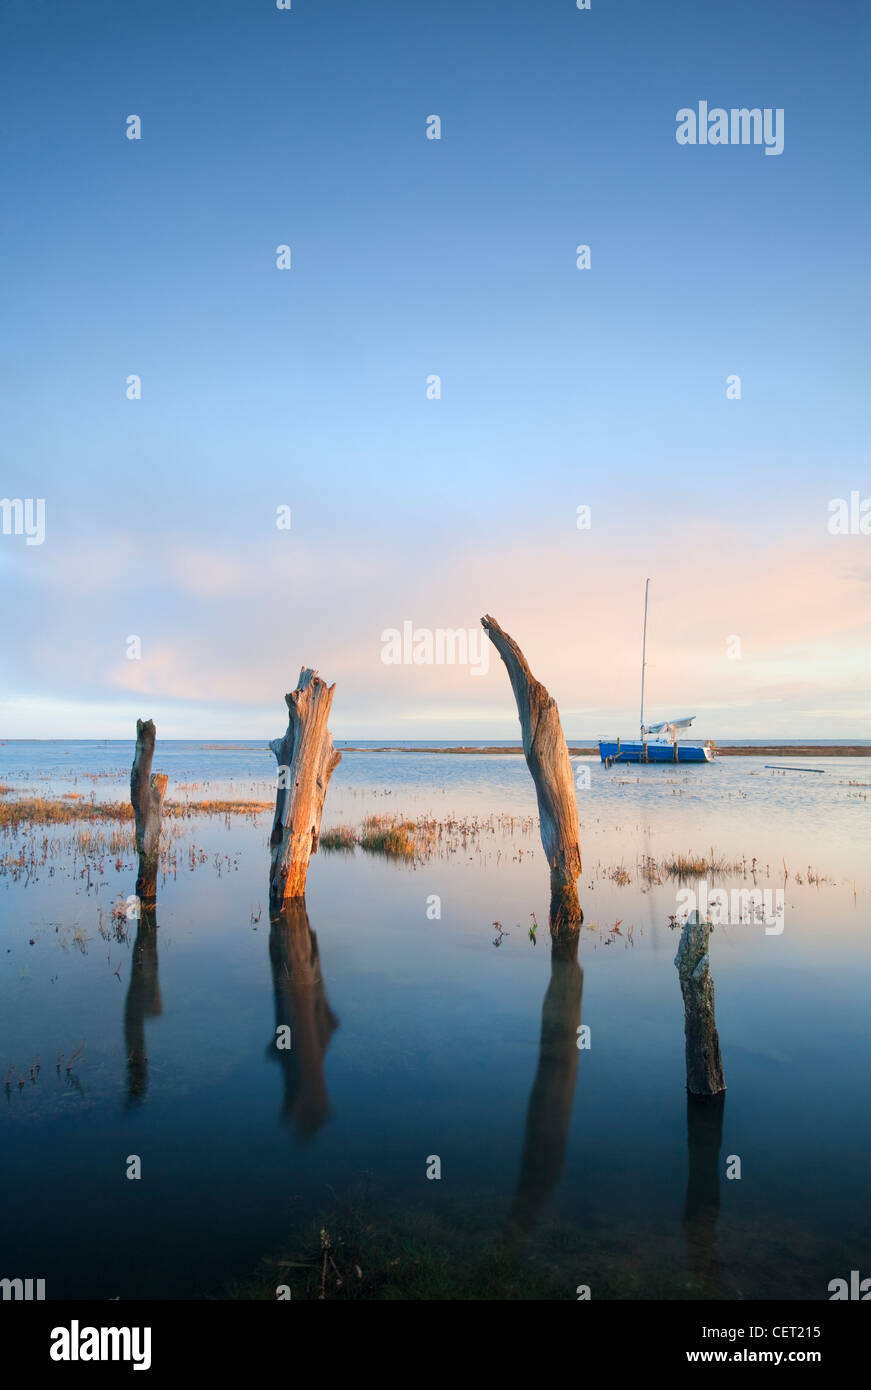 Thornham Harbour and the remains of an ancient wooden pier at high tide on the North Norfolk Coast. - Stock Image